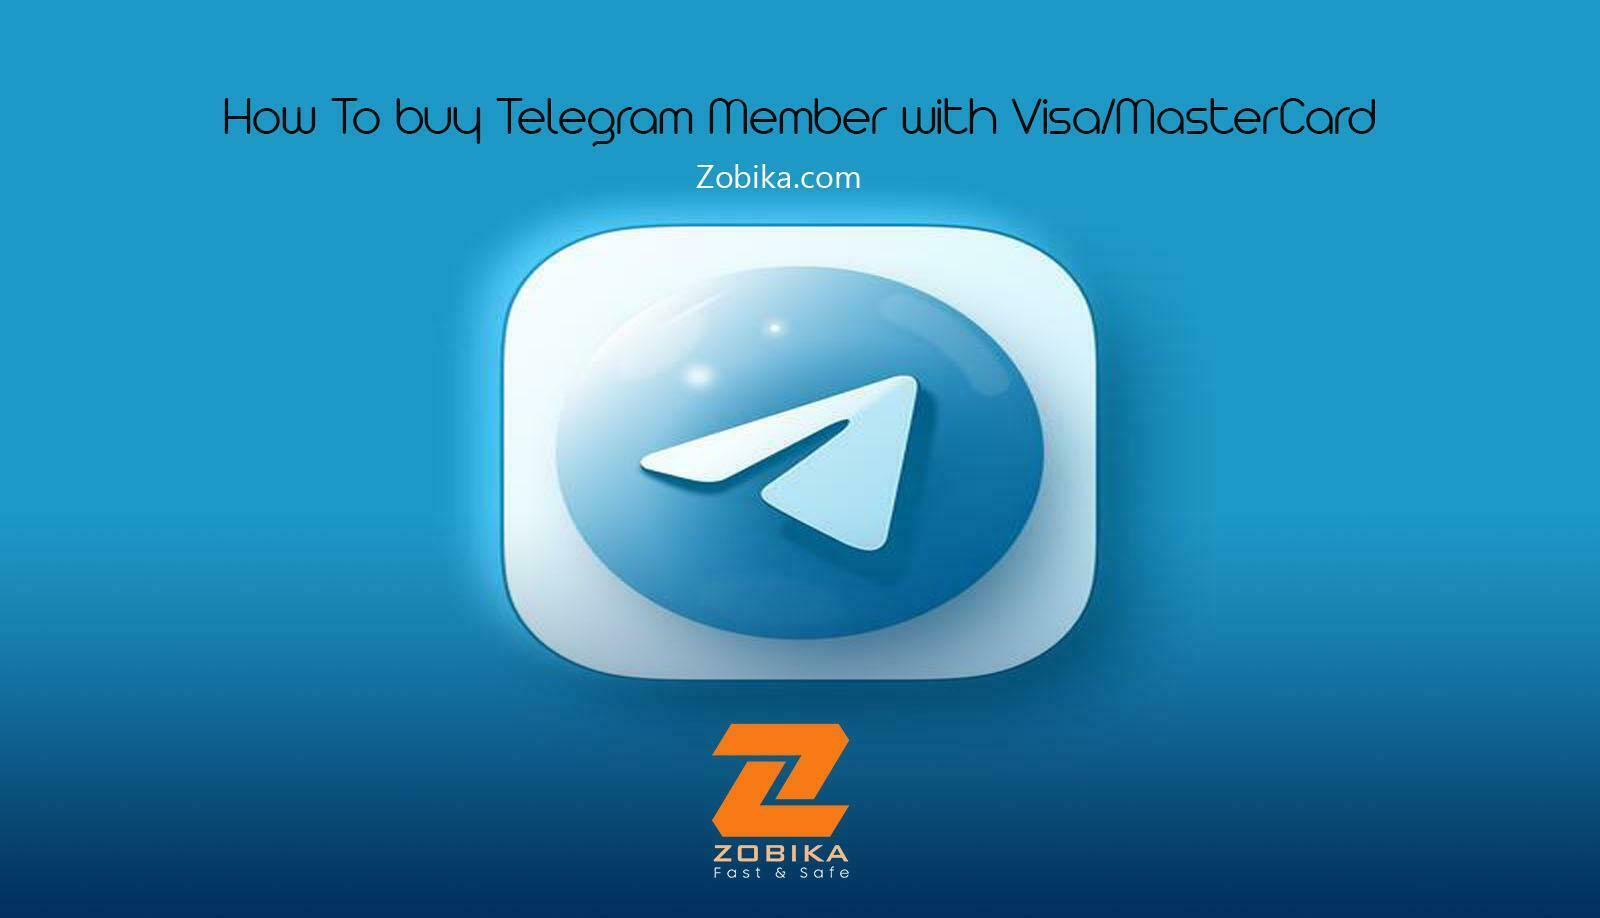 How To Purchase Telegram Member with Visa/MasterCard